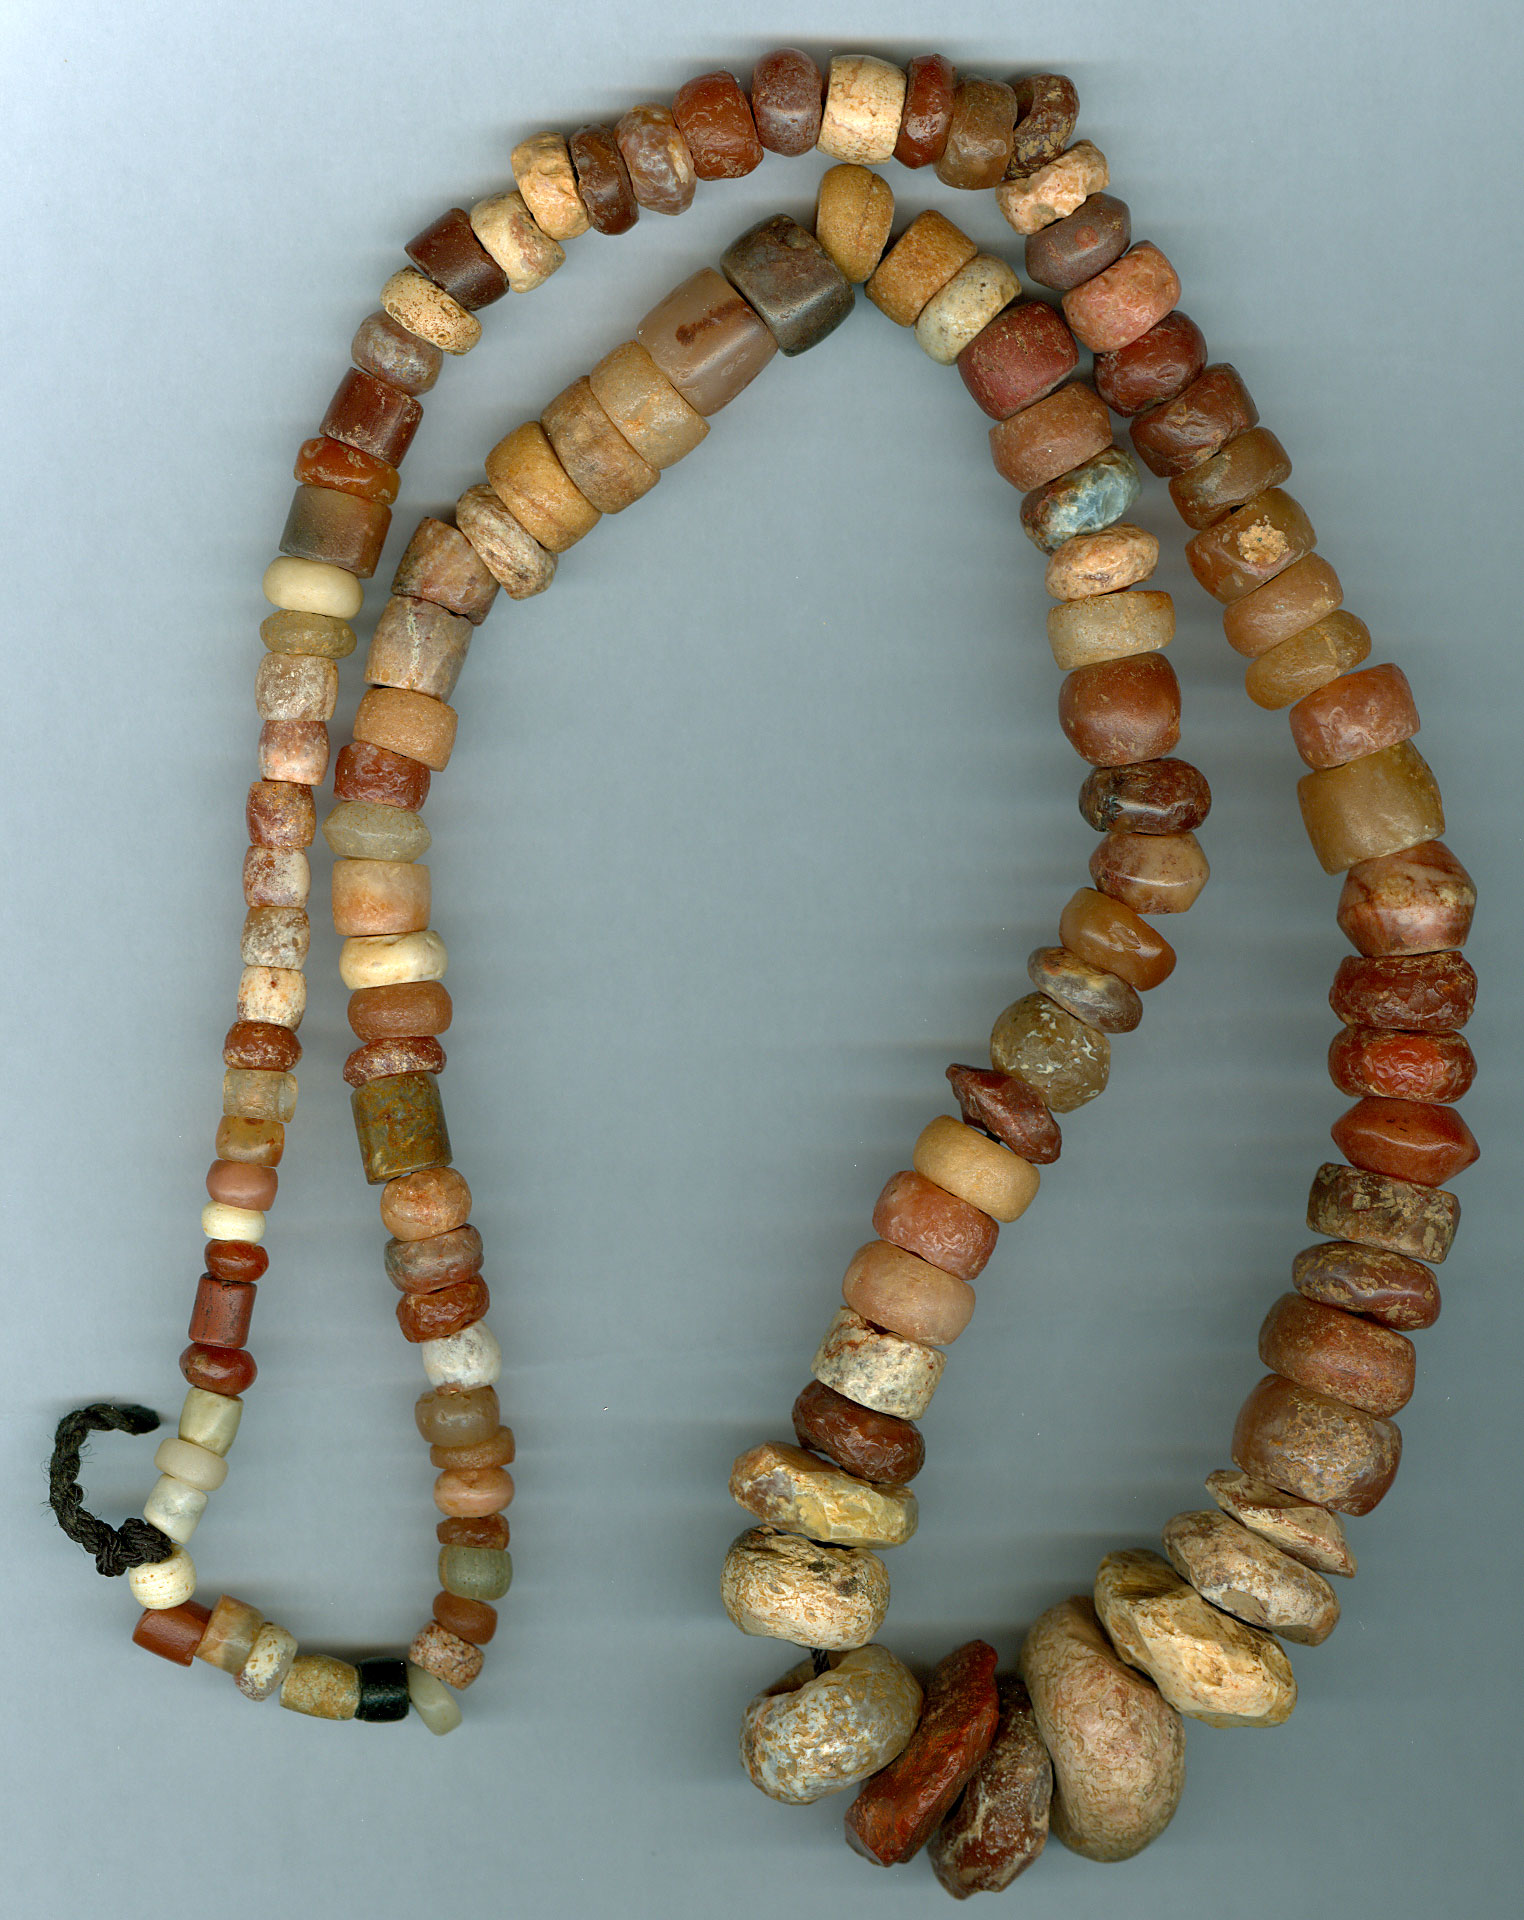 Neolithic Beads